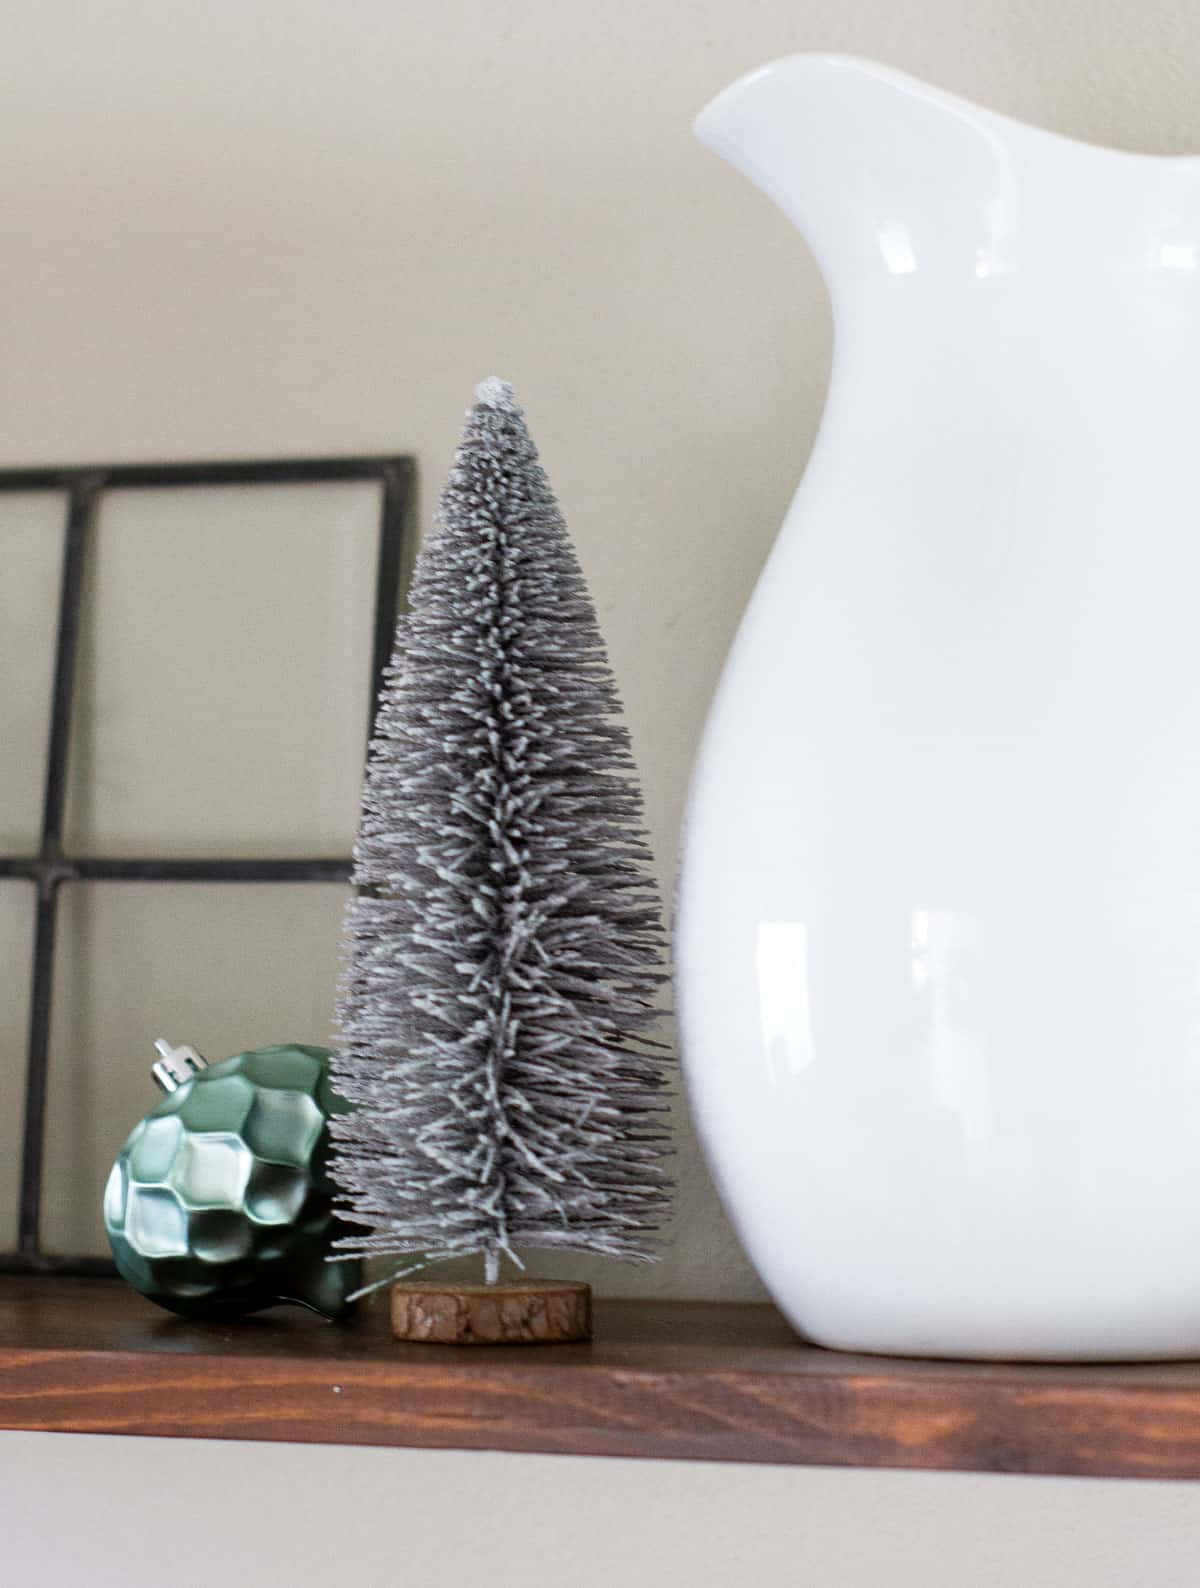 frosty minty christmas trees bottle brush trees with ornament sitting next to white pitcher on shelf